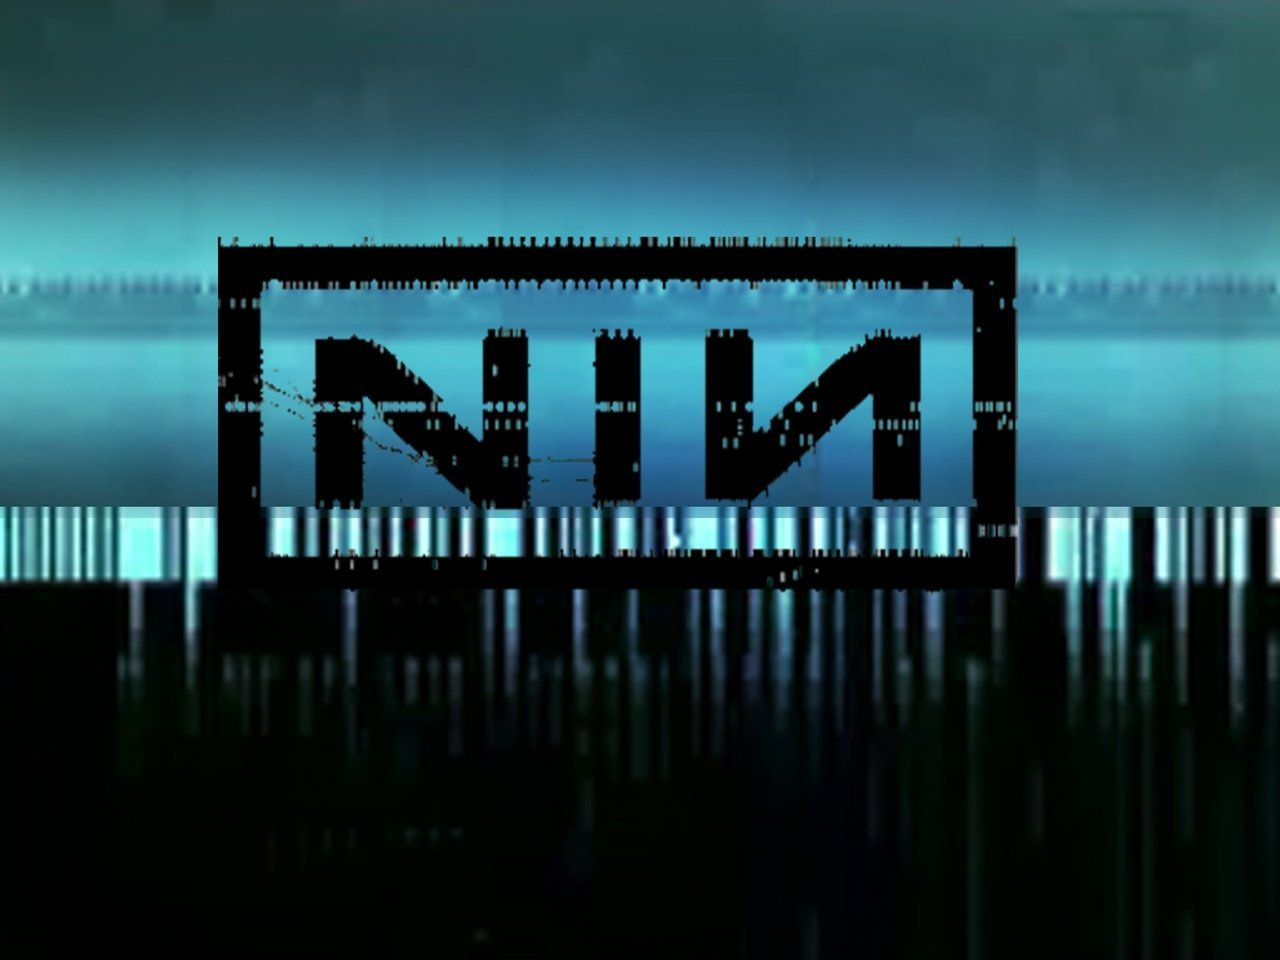 nine inch nails   Nine Inch Nails Wallpaper   Music Wallpapers ...